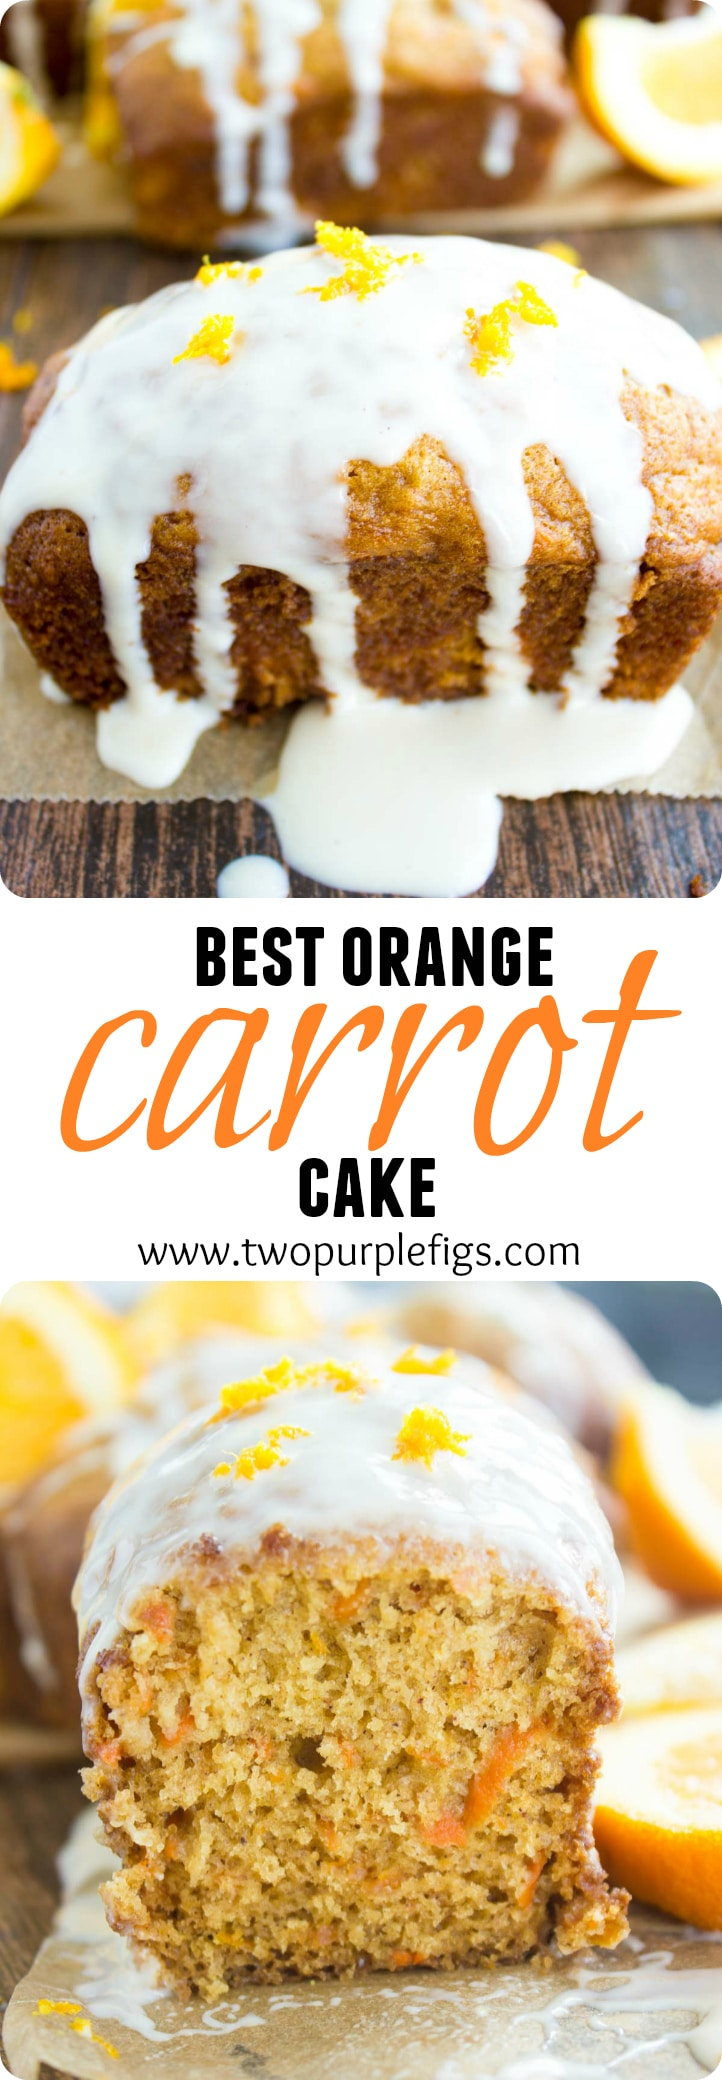 Best Orange Carrot Cake | Why is this best orange carrot cake recipe? It's light as air, very tender, moist, fluffy and studded with carrots. It has an extra boost offlavorand freshness from the orange and a faint hint of cinnamon spice. Drizzled with orange cream cheese icing, it's carrot cake perfection! #carrotcake, #Easter, #mini, #loaf, #dessert, #easy,